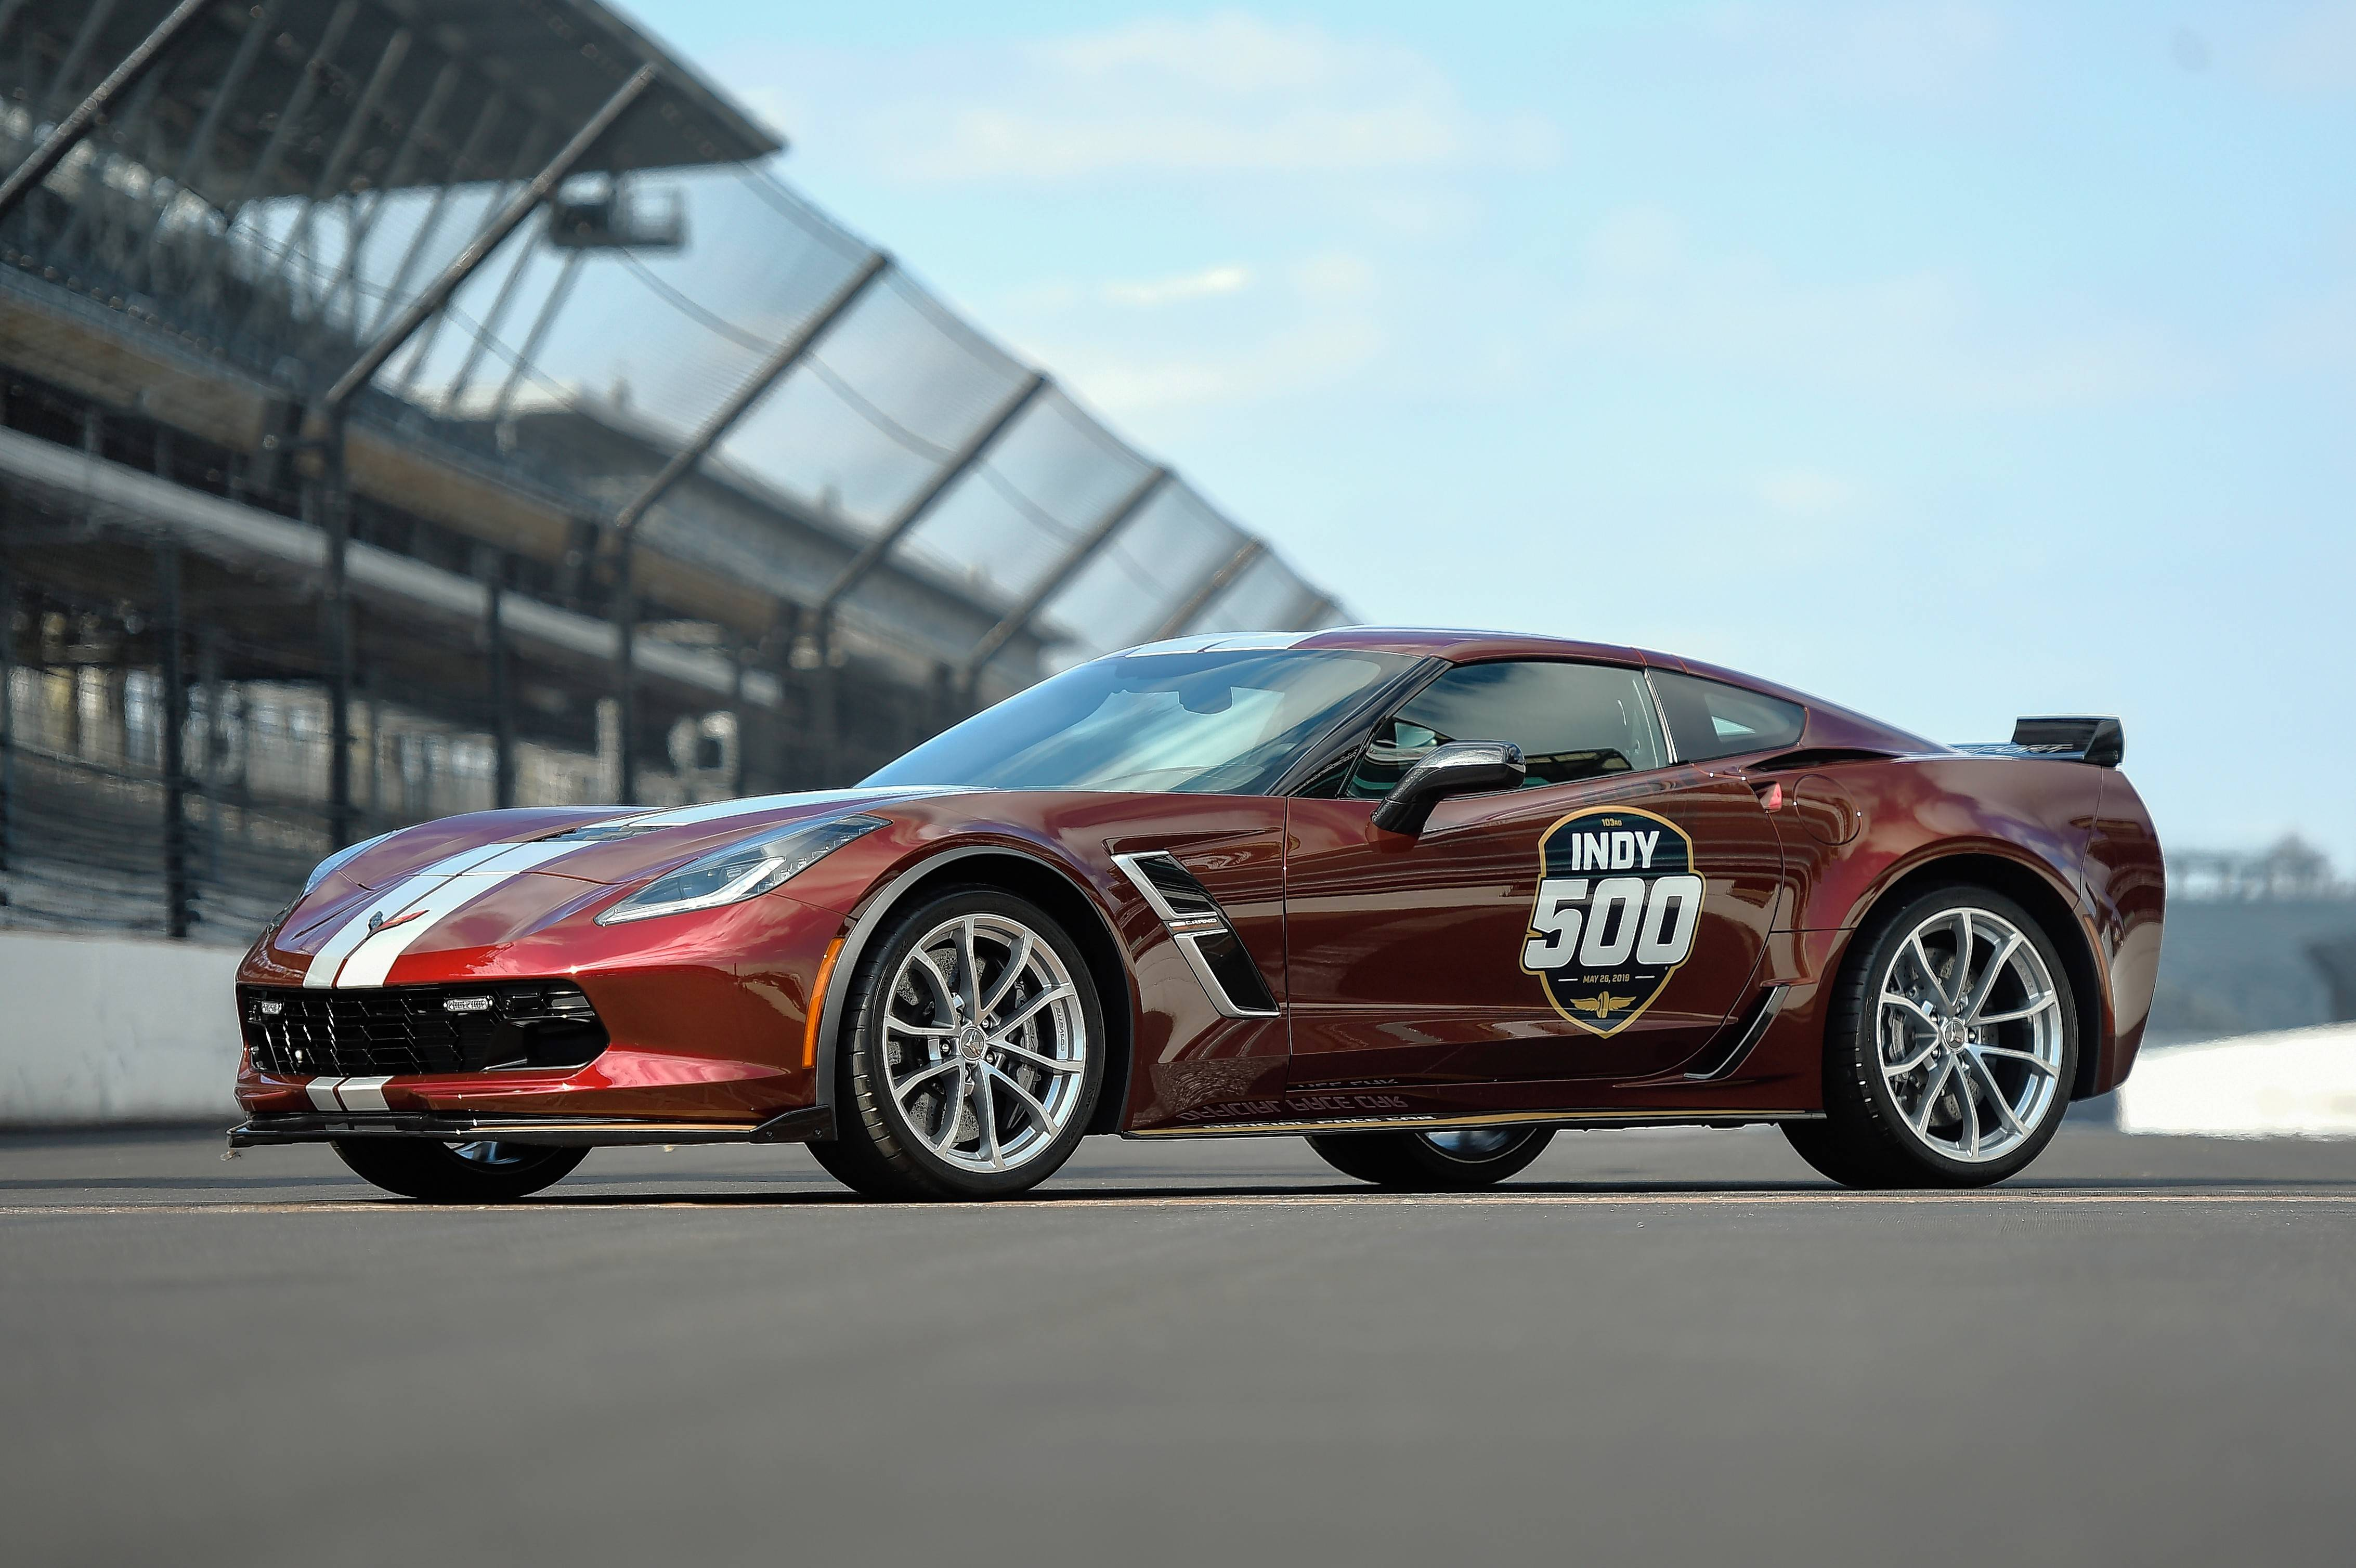 The 2019 Corvette Grand Sport will serve as the official pace car for the 103rd running of the Indianapolis 500 on May 26.